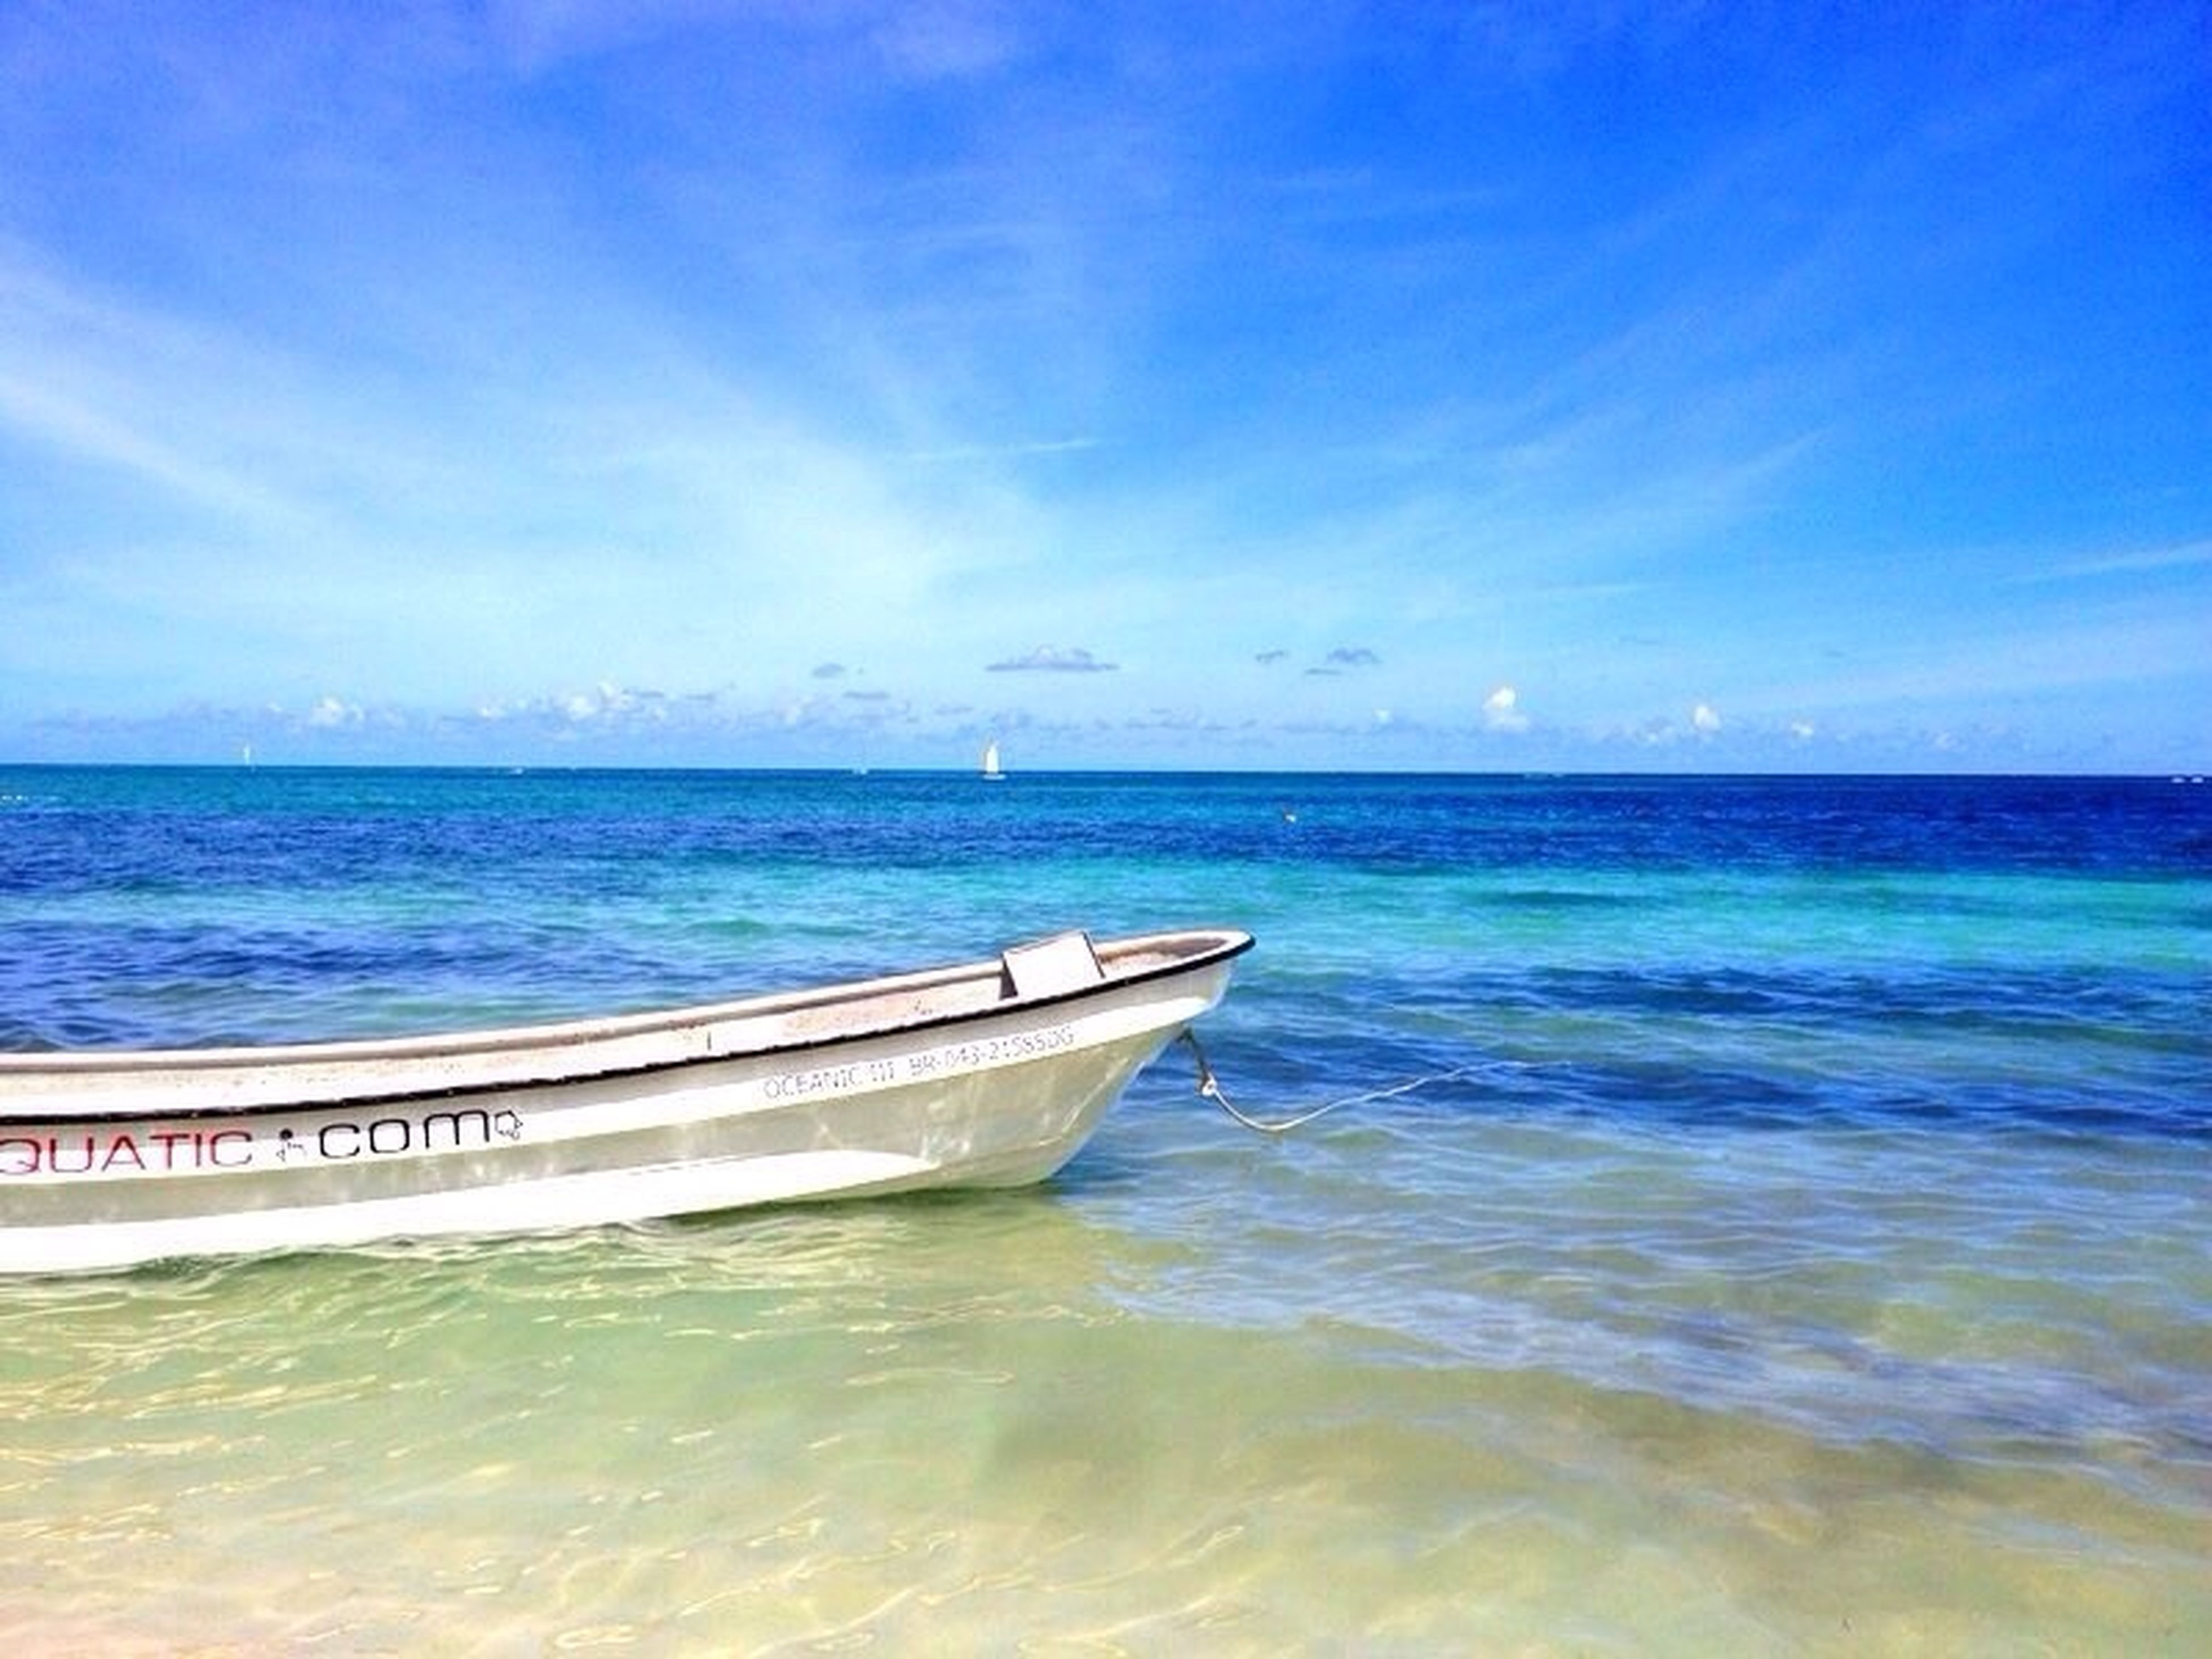 sea, water, horizon over water, nautical vessel, sky, blue, transportation, tranquil scene, tranquility, boat, beauty in nature, scenics, mode of transport, nature, waterfront, idyllic, seascape, rippled, beach, day